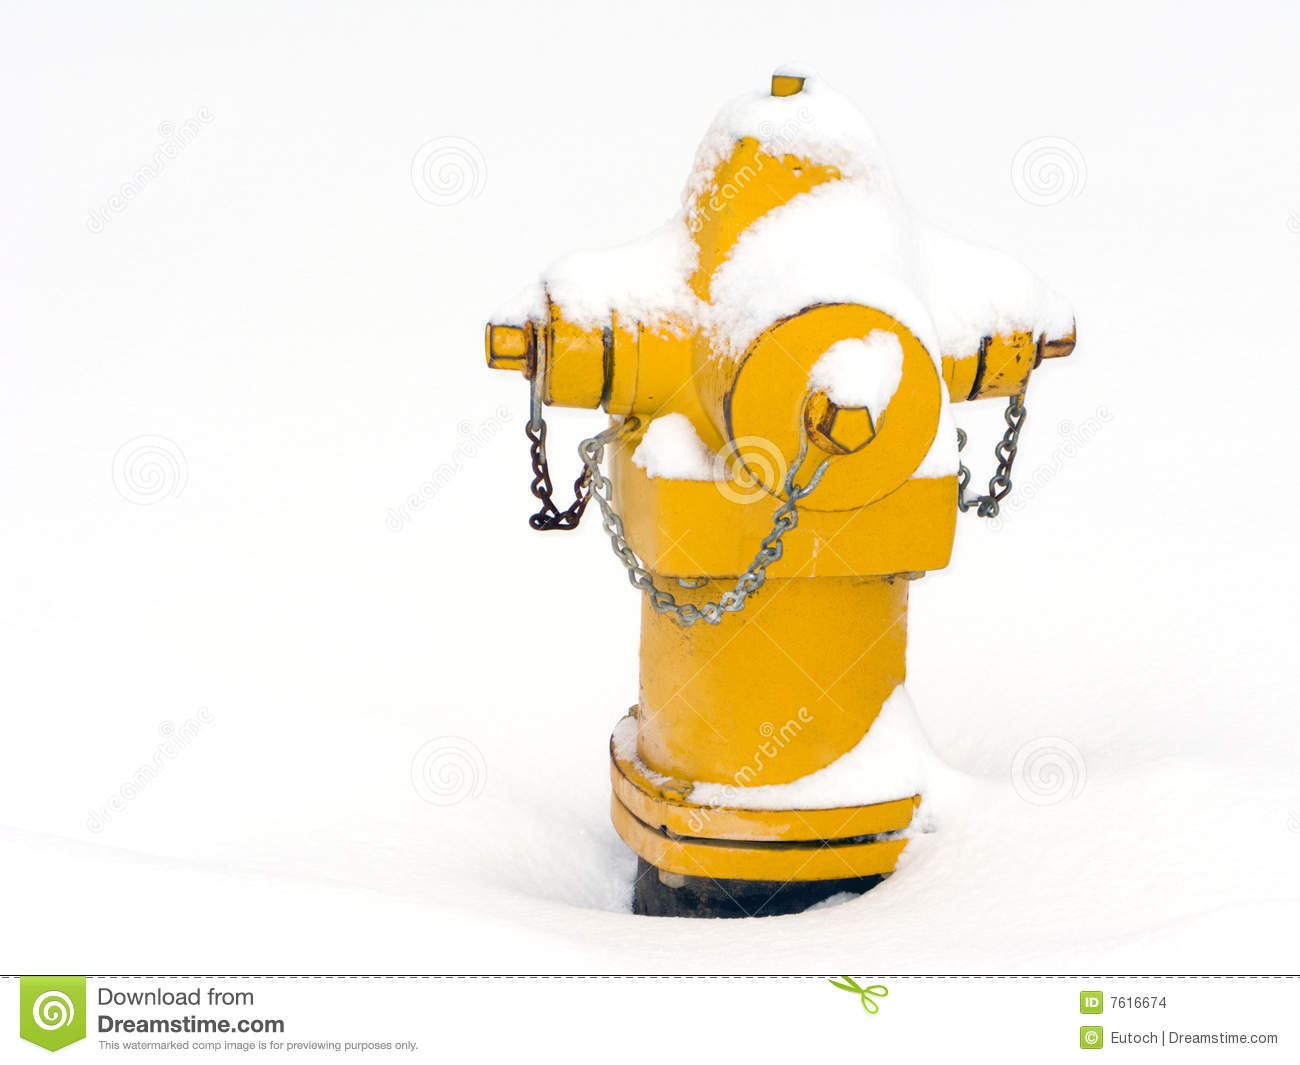 how to open a fire hydrant